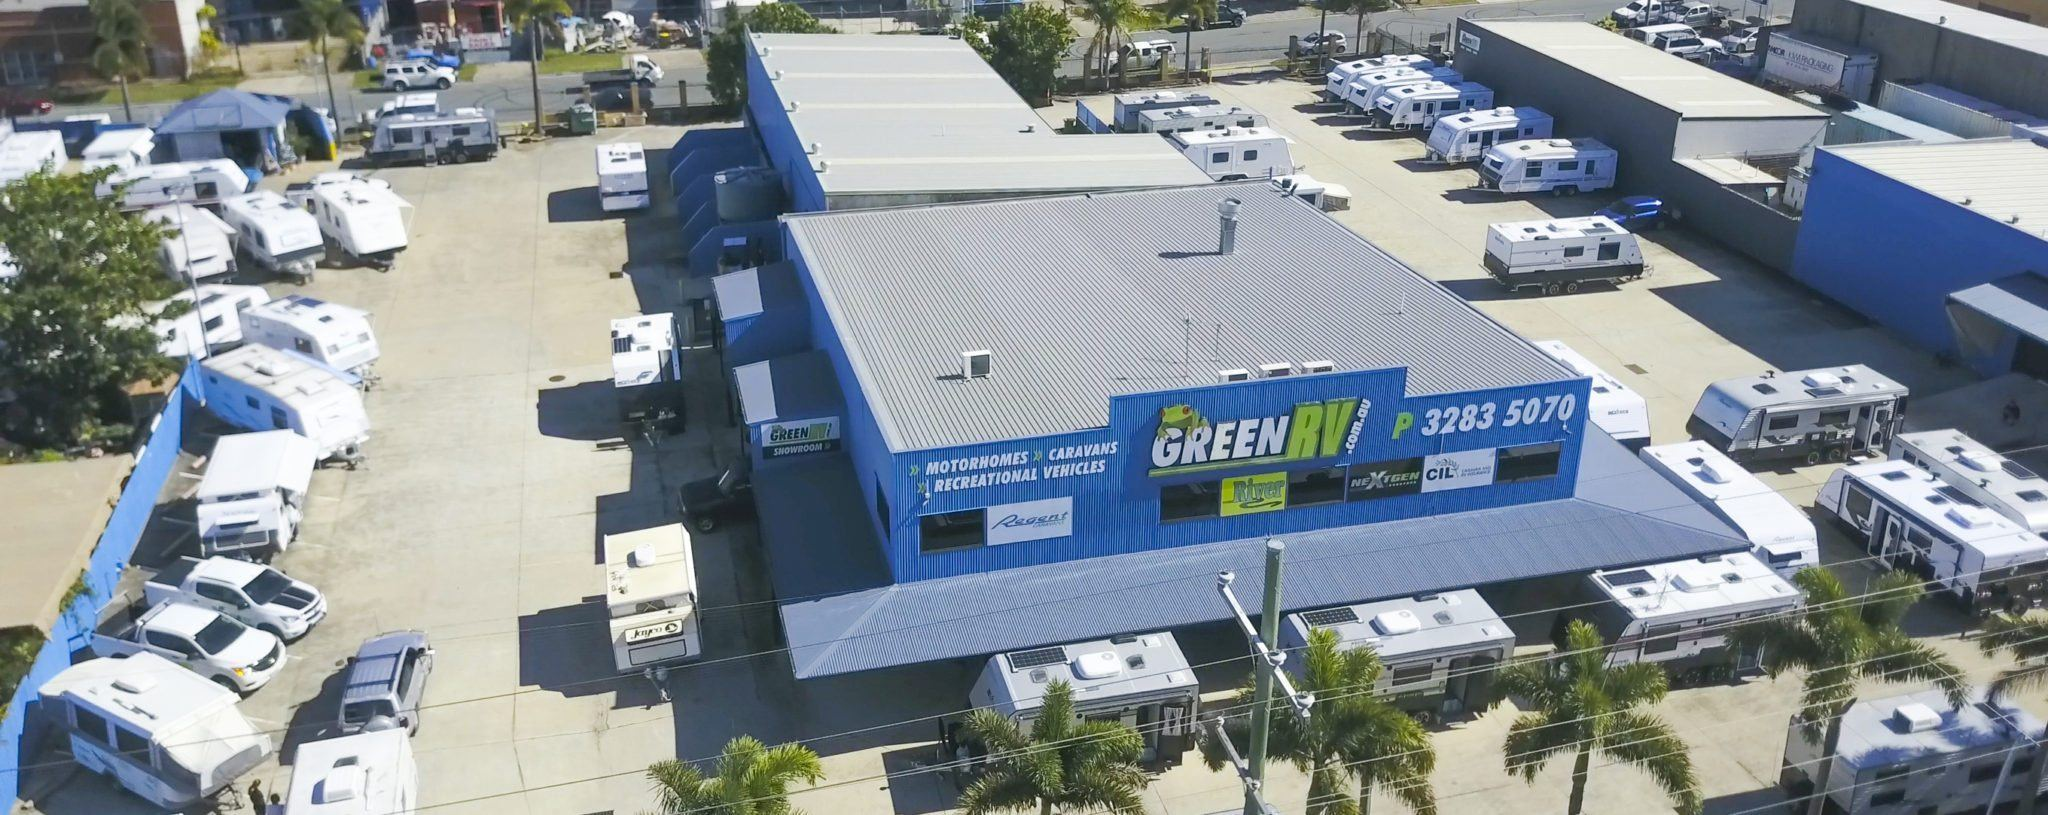 Green RV office aerial view